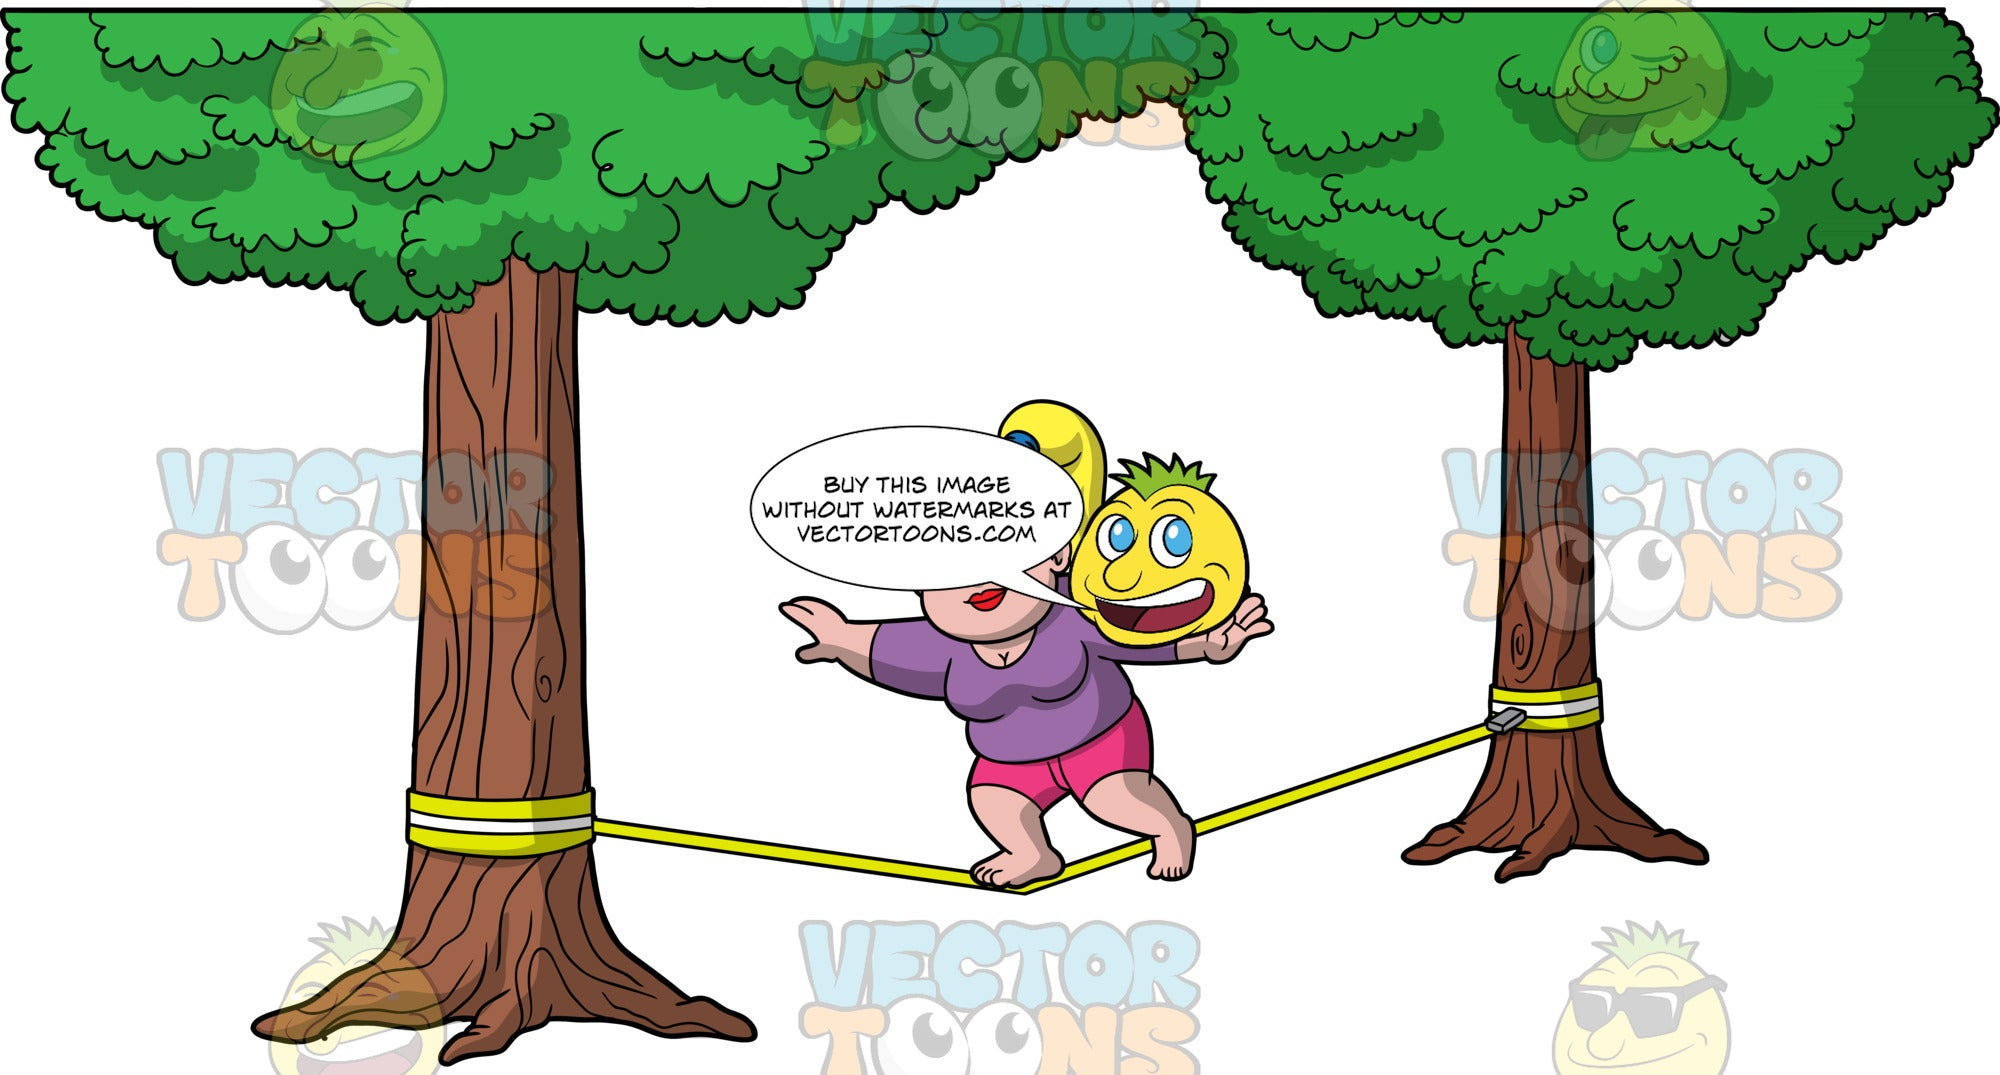 Pat Balancing While Walking On A Slackline. A chubby blonde woman wearing pink shorts, and a purple shirt, balancing on one foot as she tries to make her way across a slackline